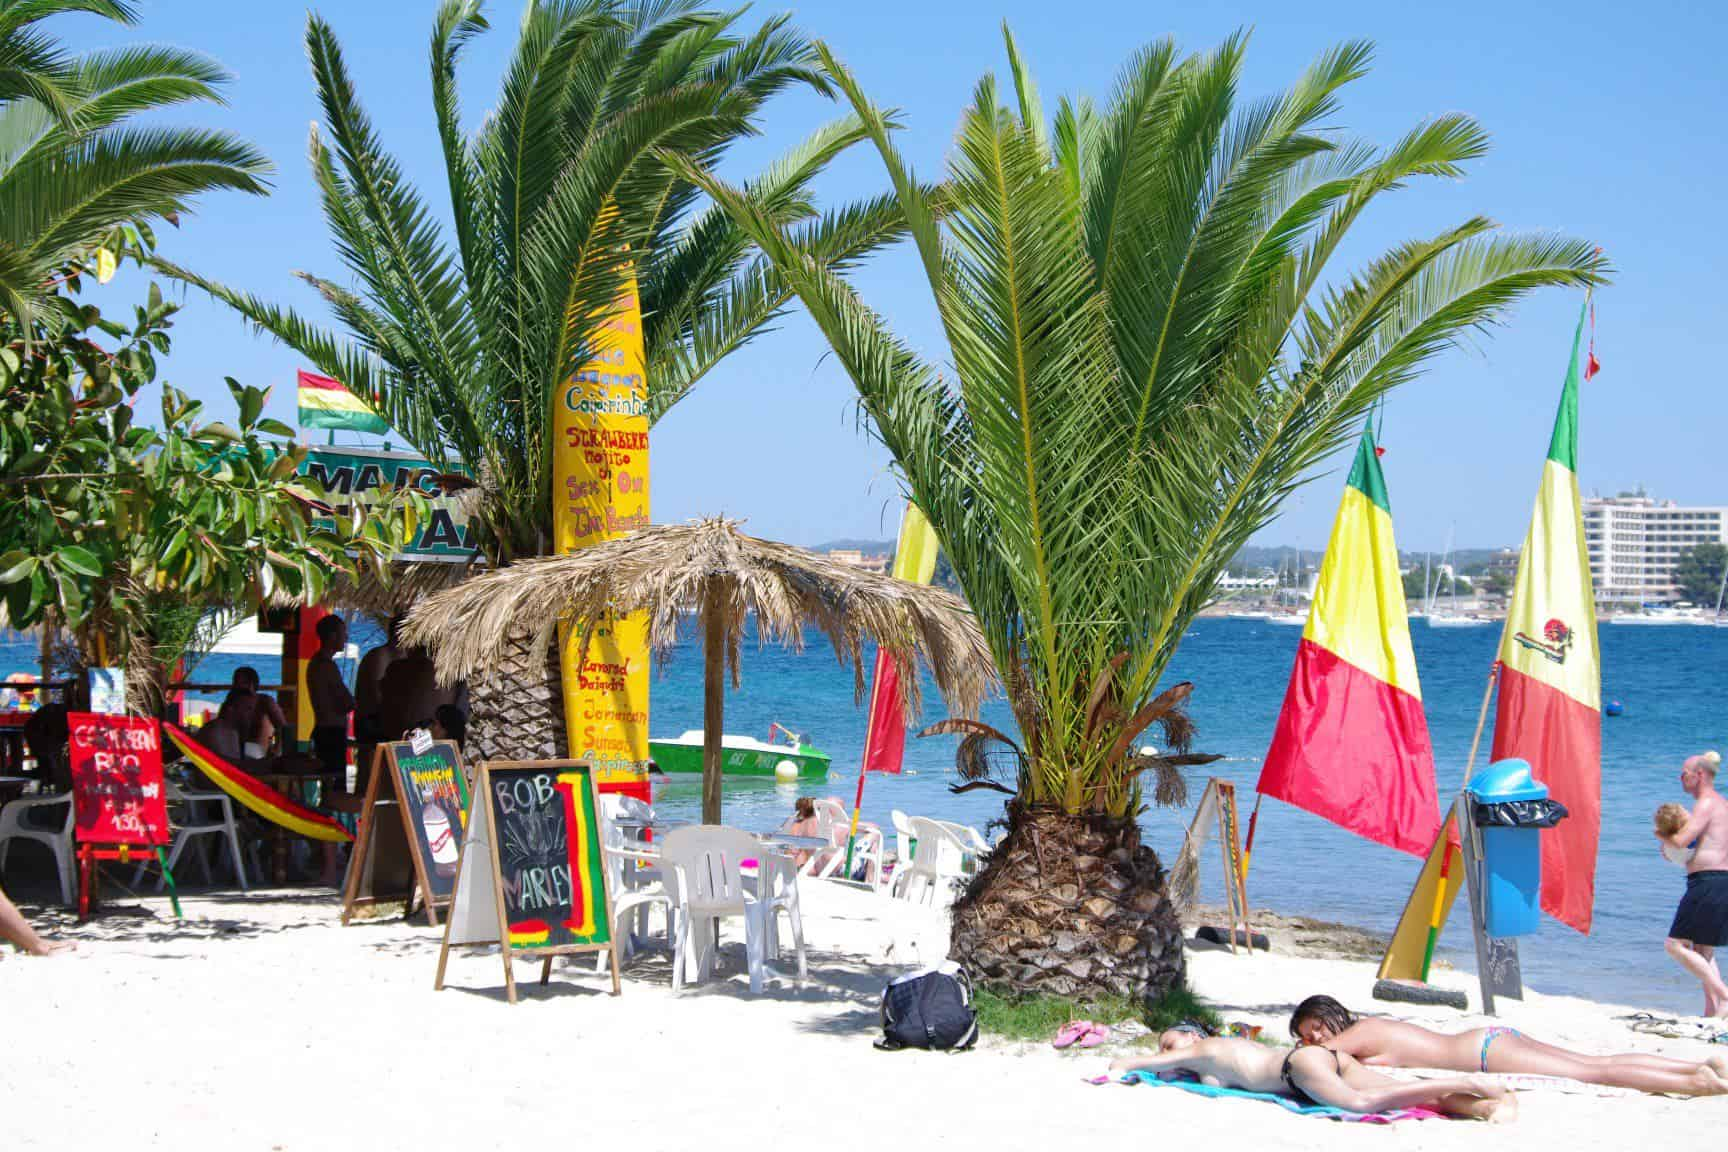 Reggae Beach Bar, Jamaica, Cayman Islands, Jamaica beaches, best beaches of Jamaica, Greater Antilles beaches